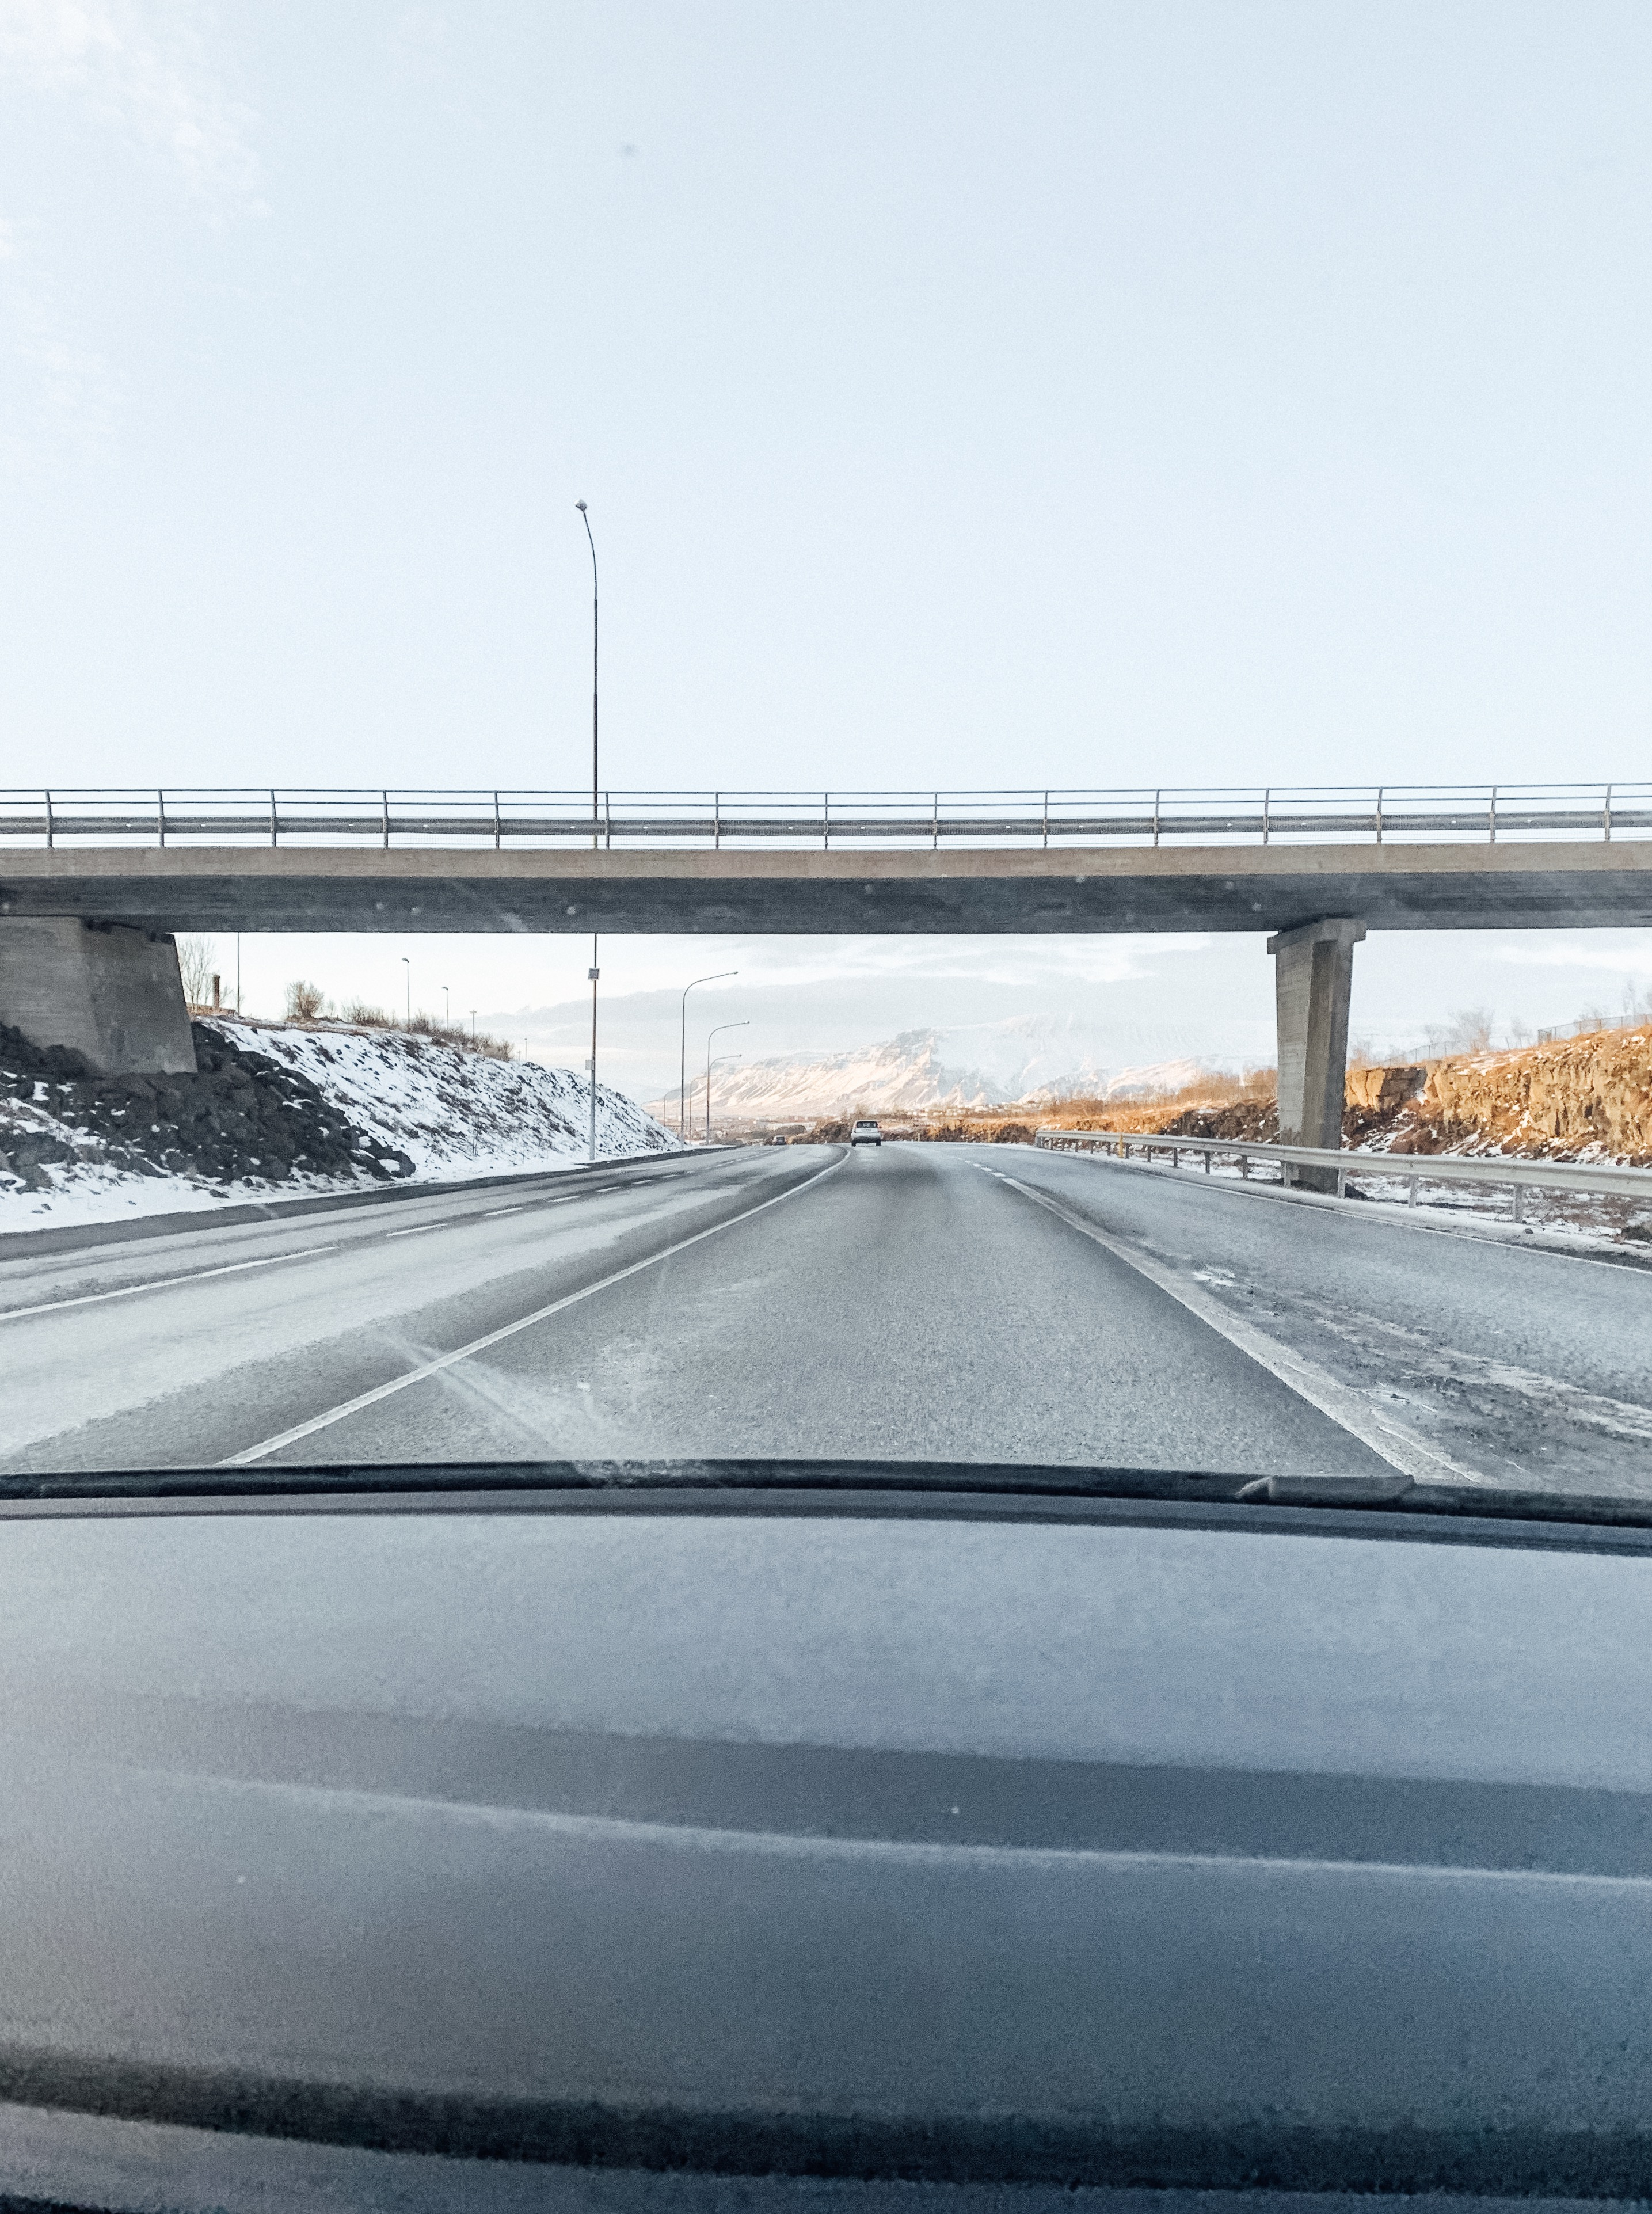 Driving into the suburbs on Reykjavik.